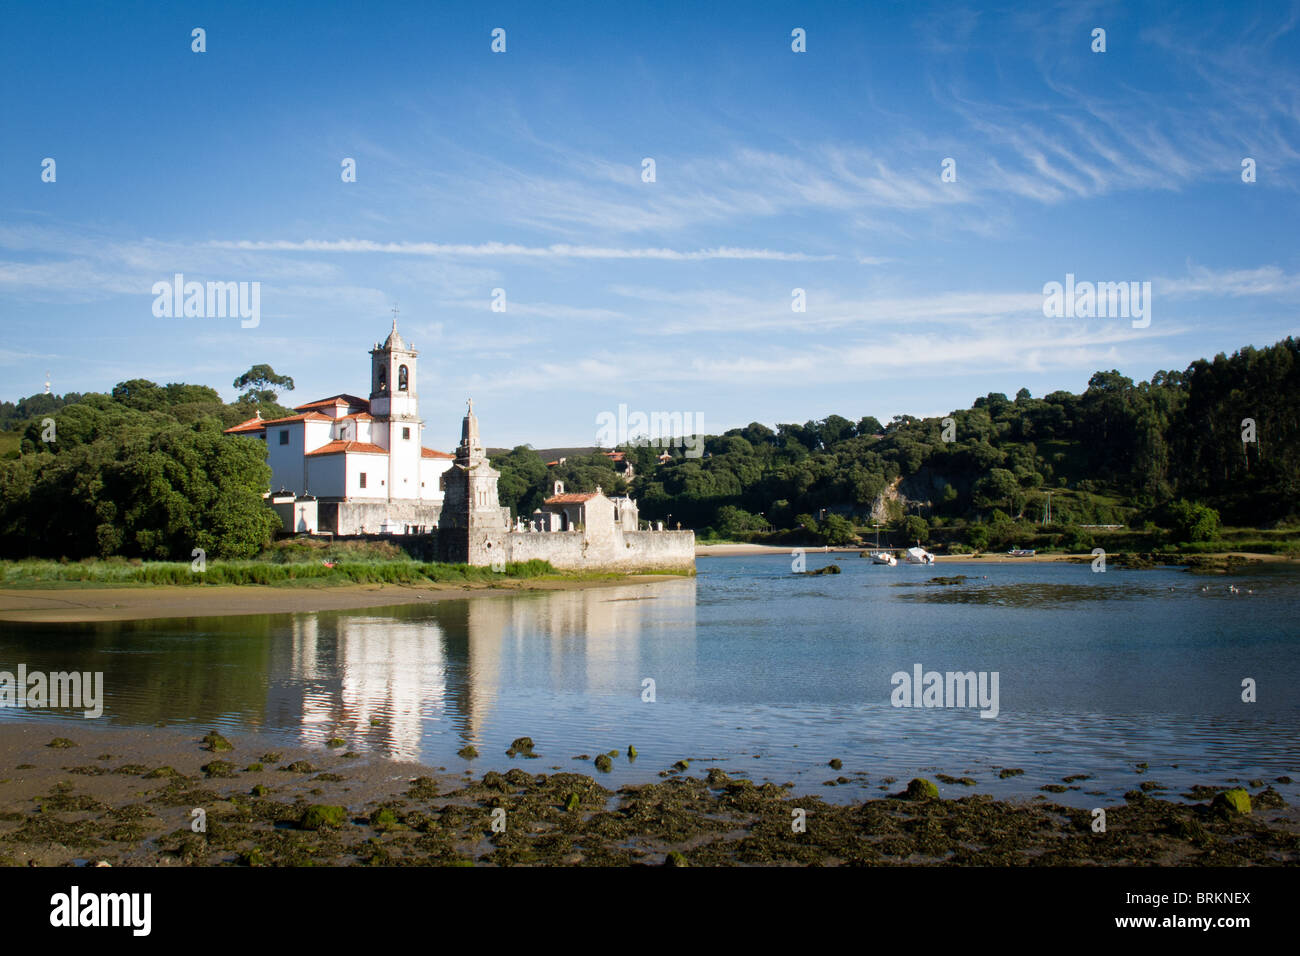 4 Aug 2010 Church at Barro, Llanes, Asturias, Spain - Stock Image